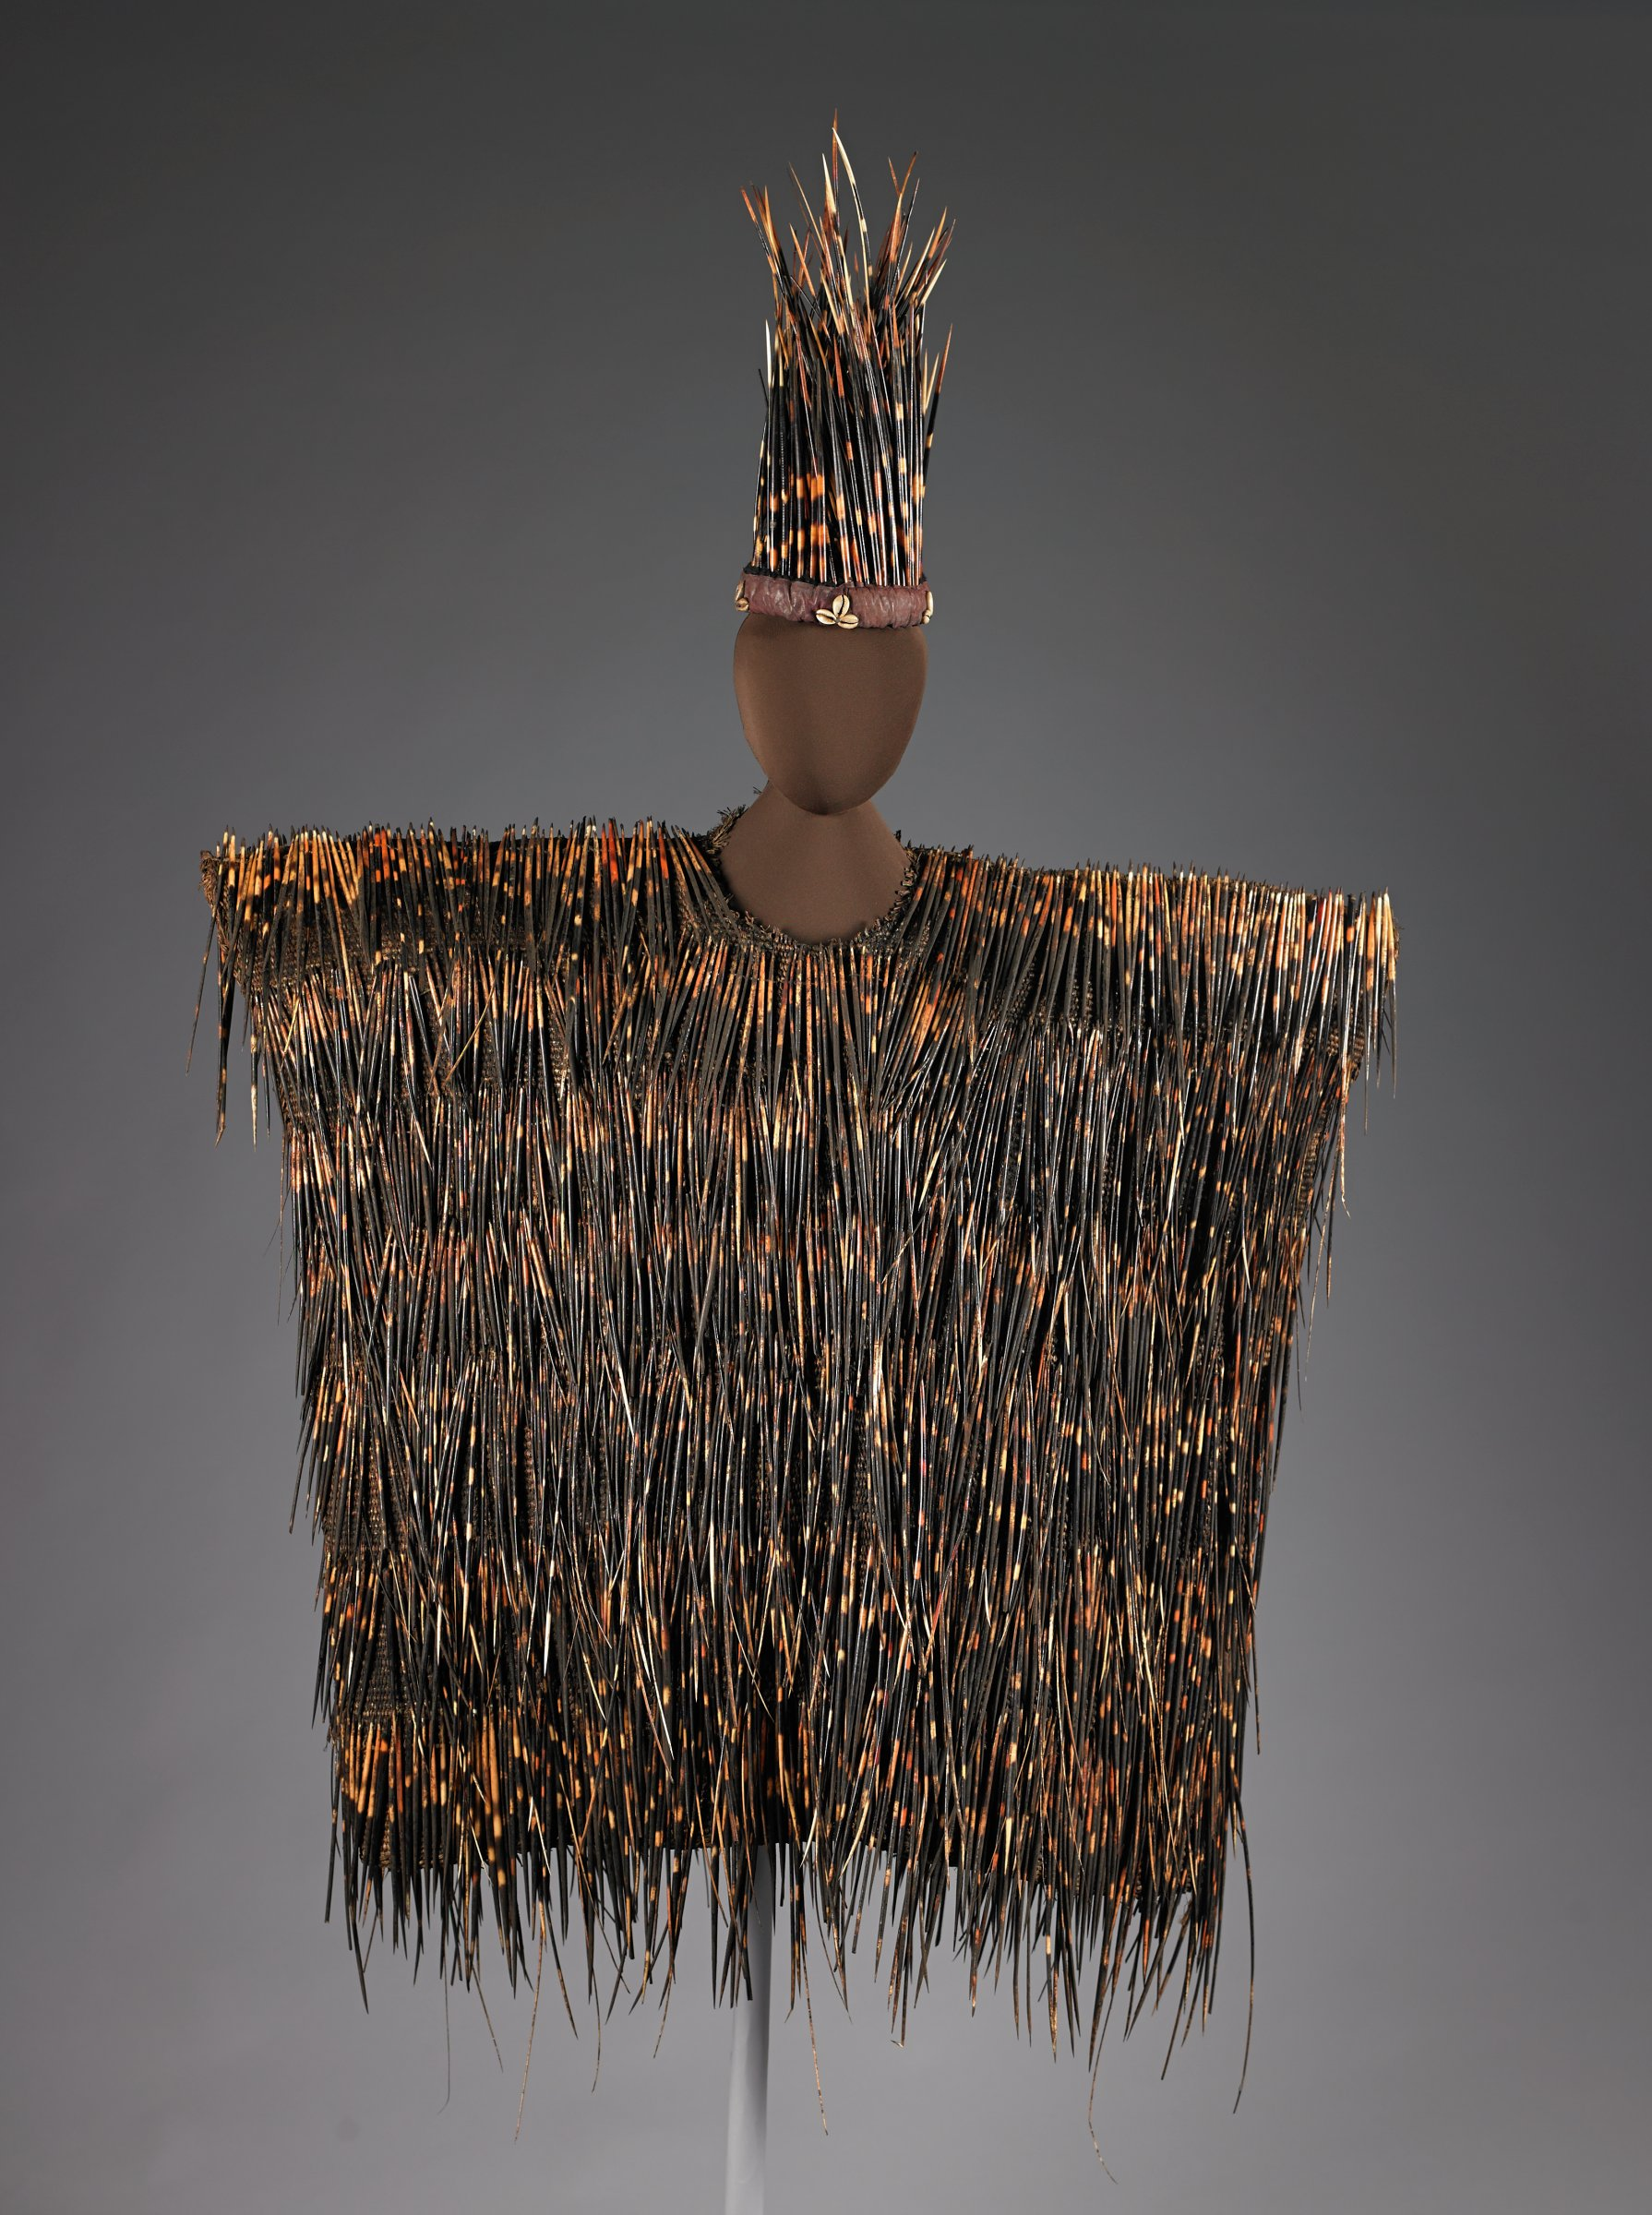 Woven plant fiber tunic with attached porcupine quills.